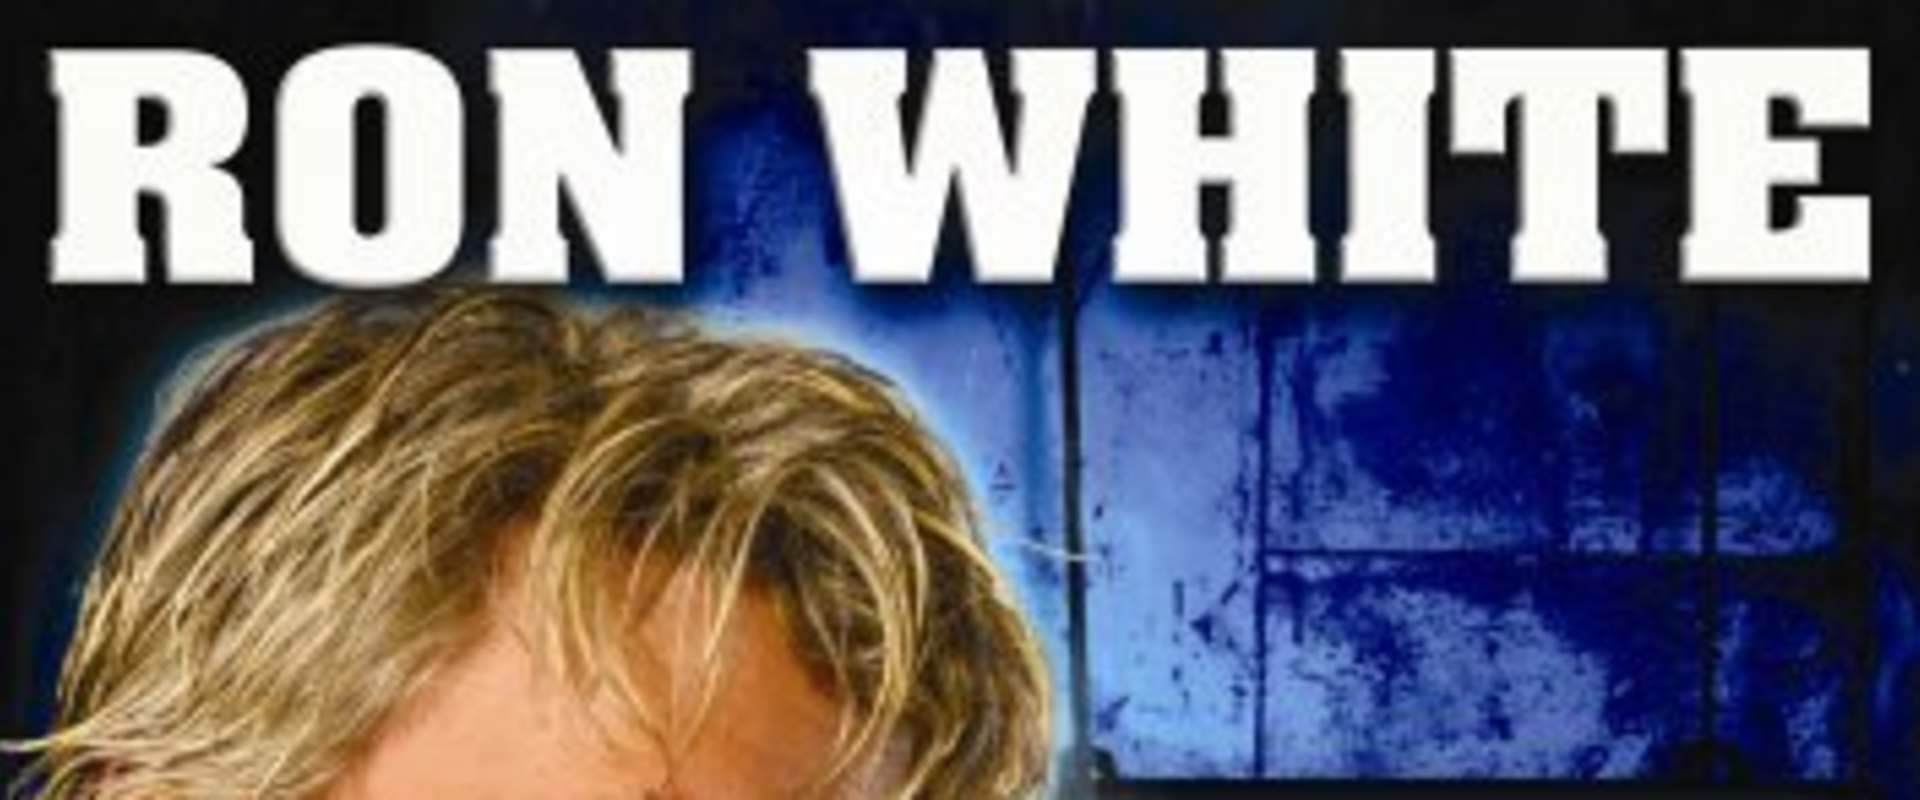 Ron White: You Can't Fix Stupid background 1